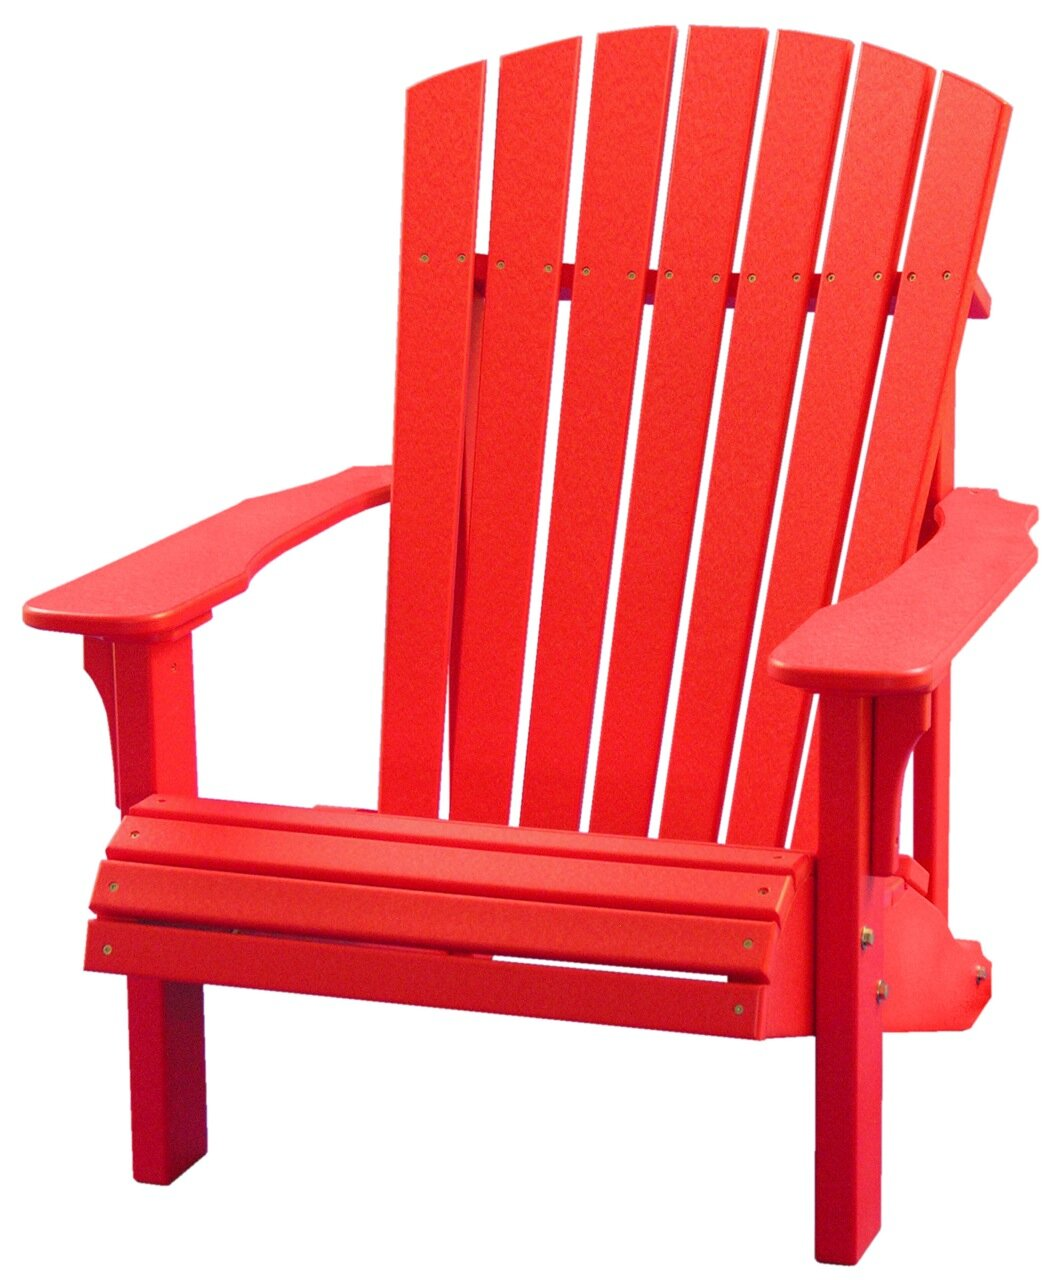 cheap adirondack chairs adirondack chair home depot plastic adirondack chairs home depot